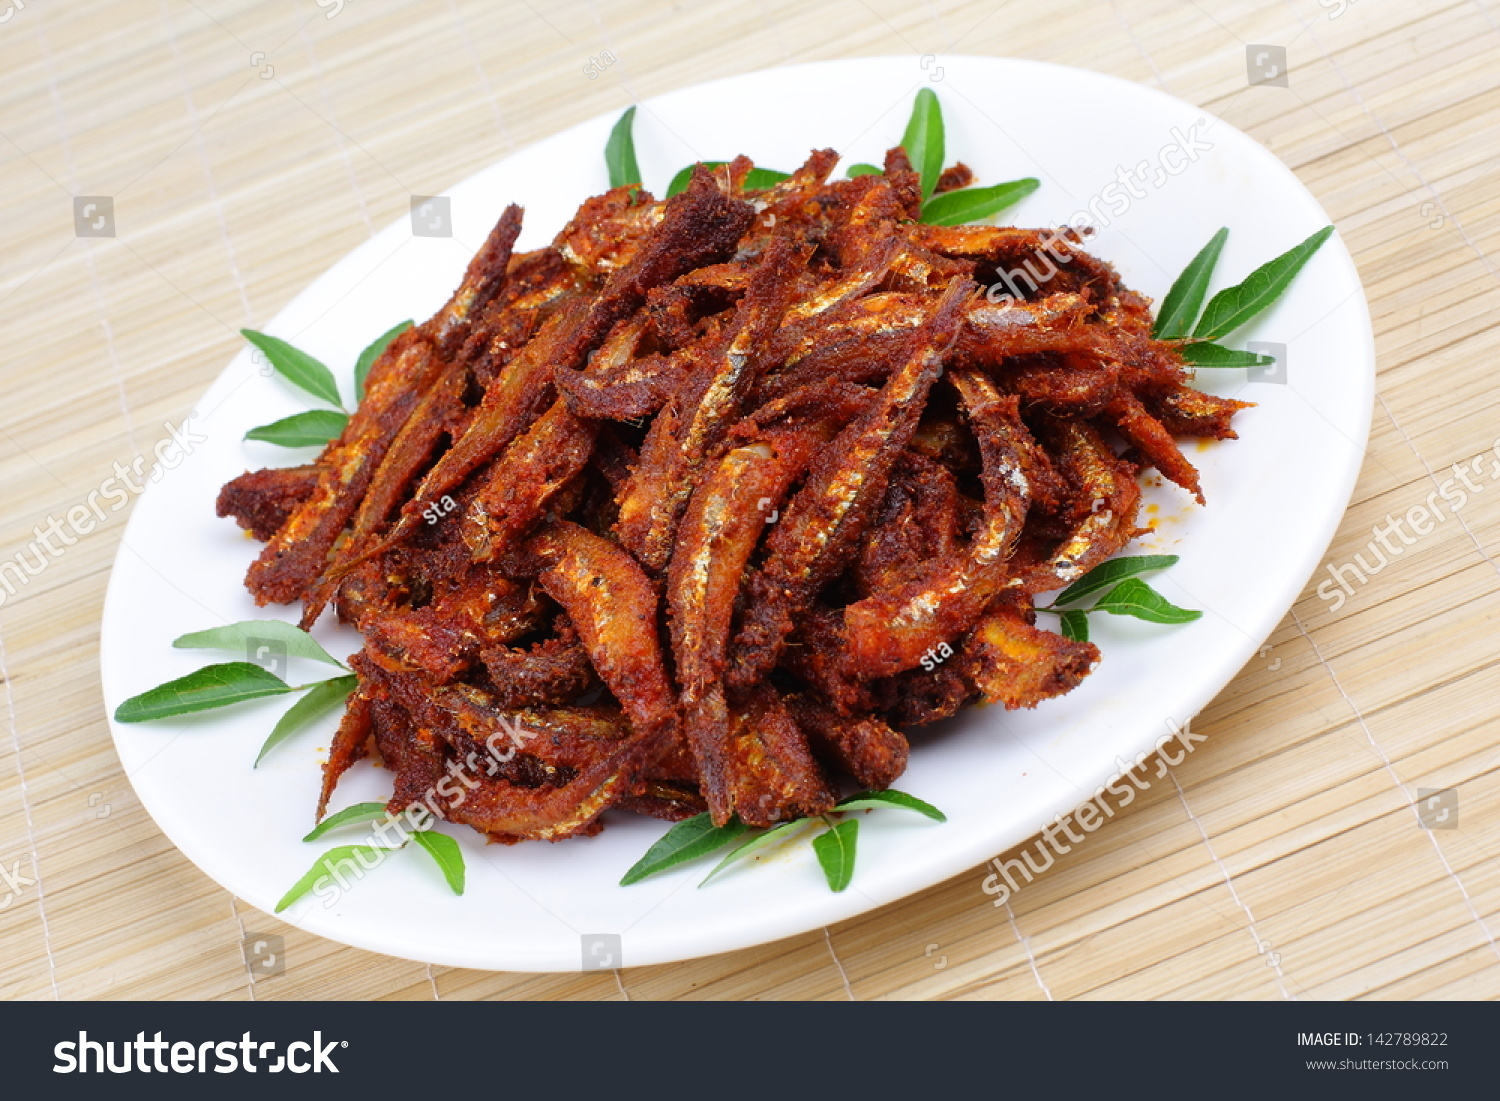 Side view anchovy fish fry curry stock photo 142789822 for Sides to bring to a fish fry